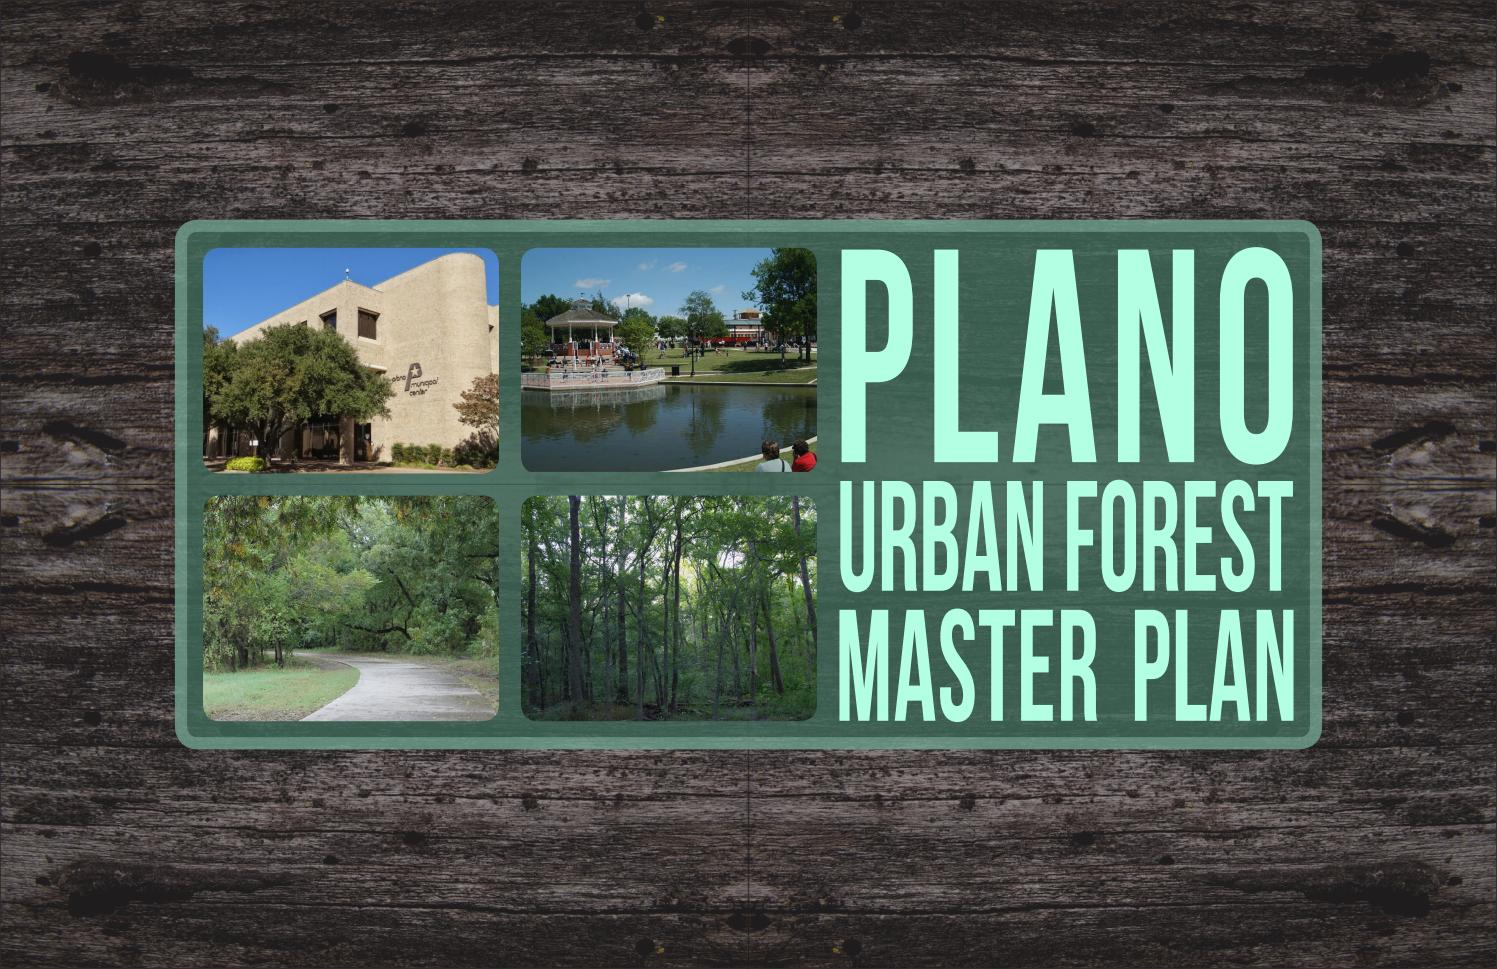 Plano Parks And Recreation Urban Forest Master Plan 2018 By Plano